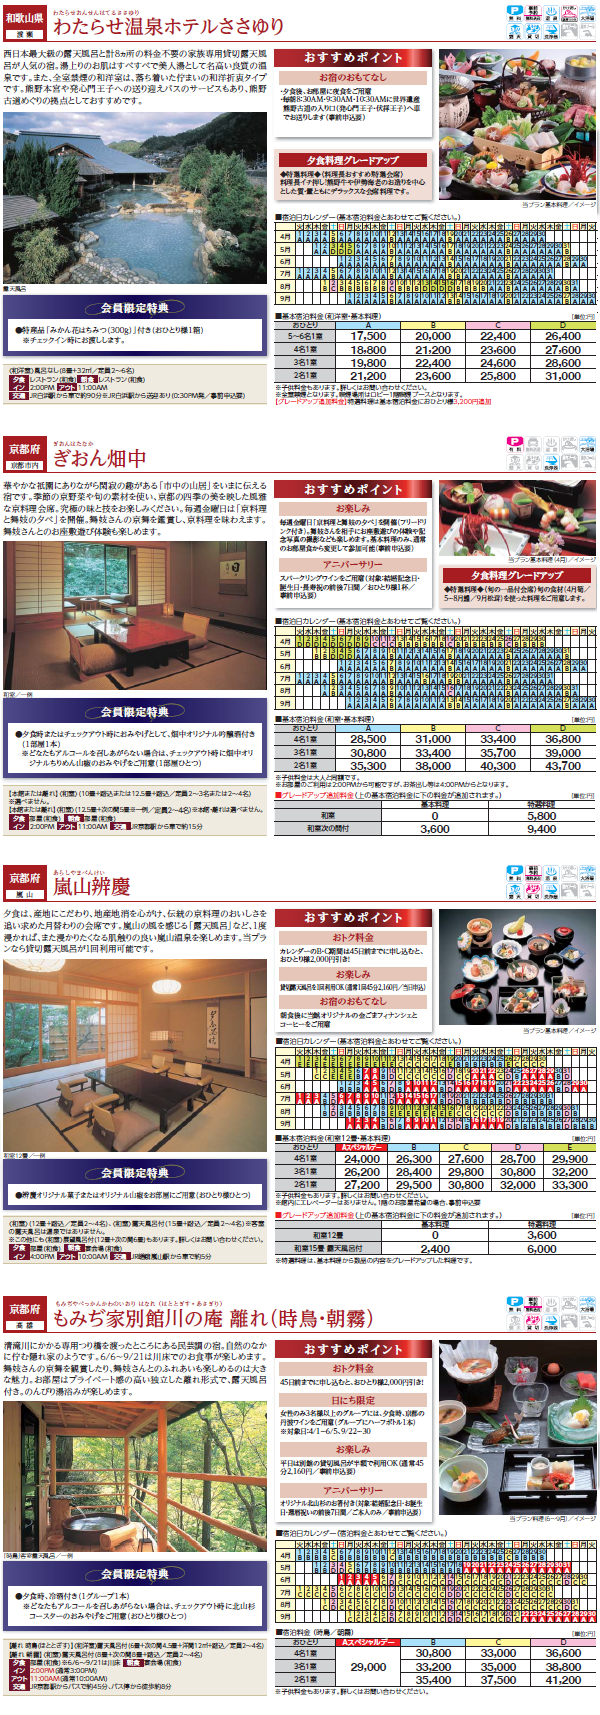 stay_plan_ryokan_1403_17